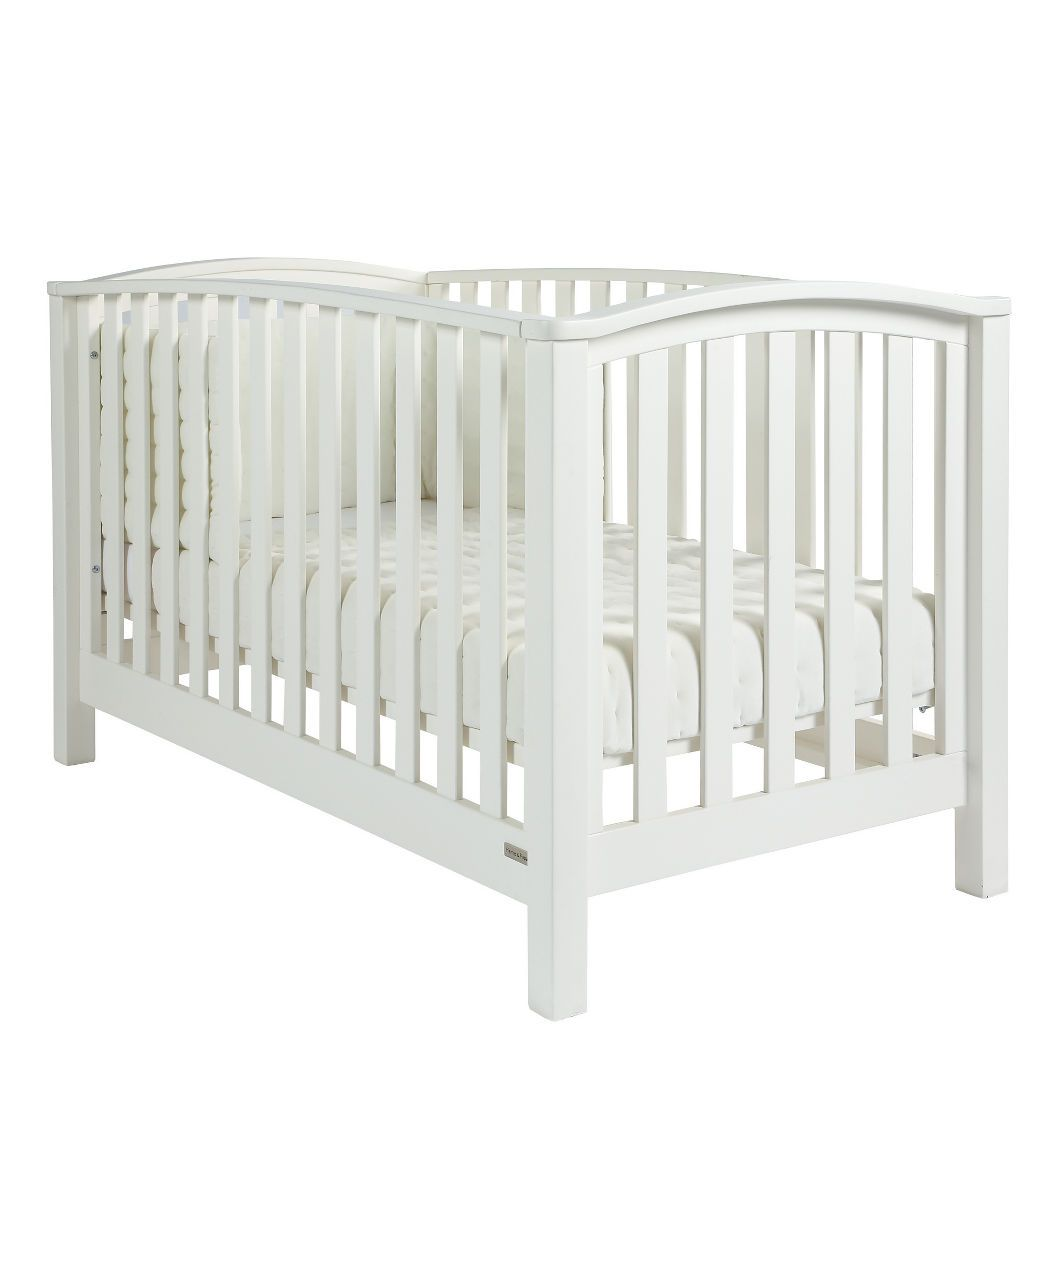 Alpine Cot Day Bed White Cot Beds Cots Cribs Mamas Papas White Cot Bed Bed Cot Bedding